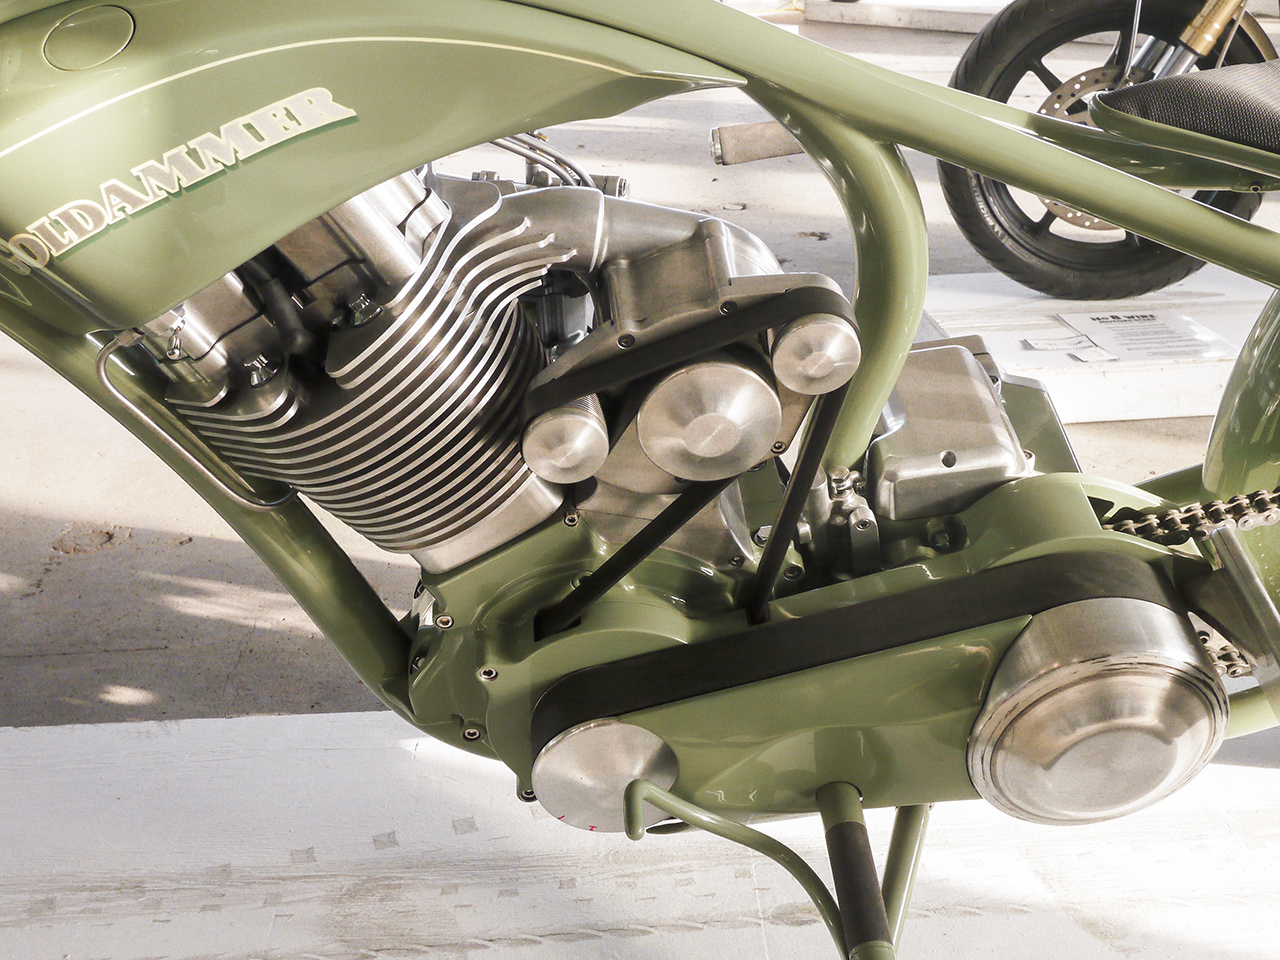 Super clean blown single made from a Twin-Cam Evo engine by Roger Goldammer. This is art and craftsmanship at a very high level. The bike defies classification.